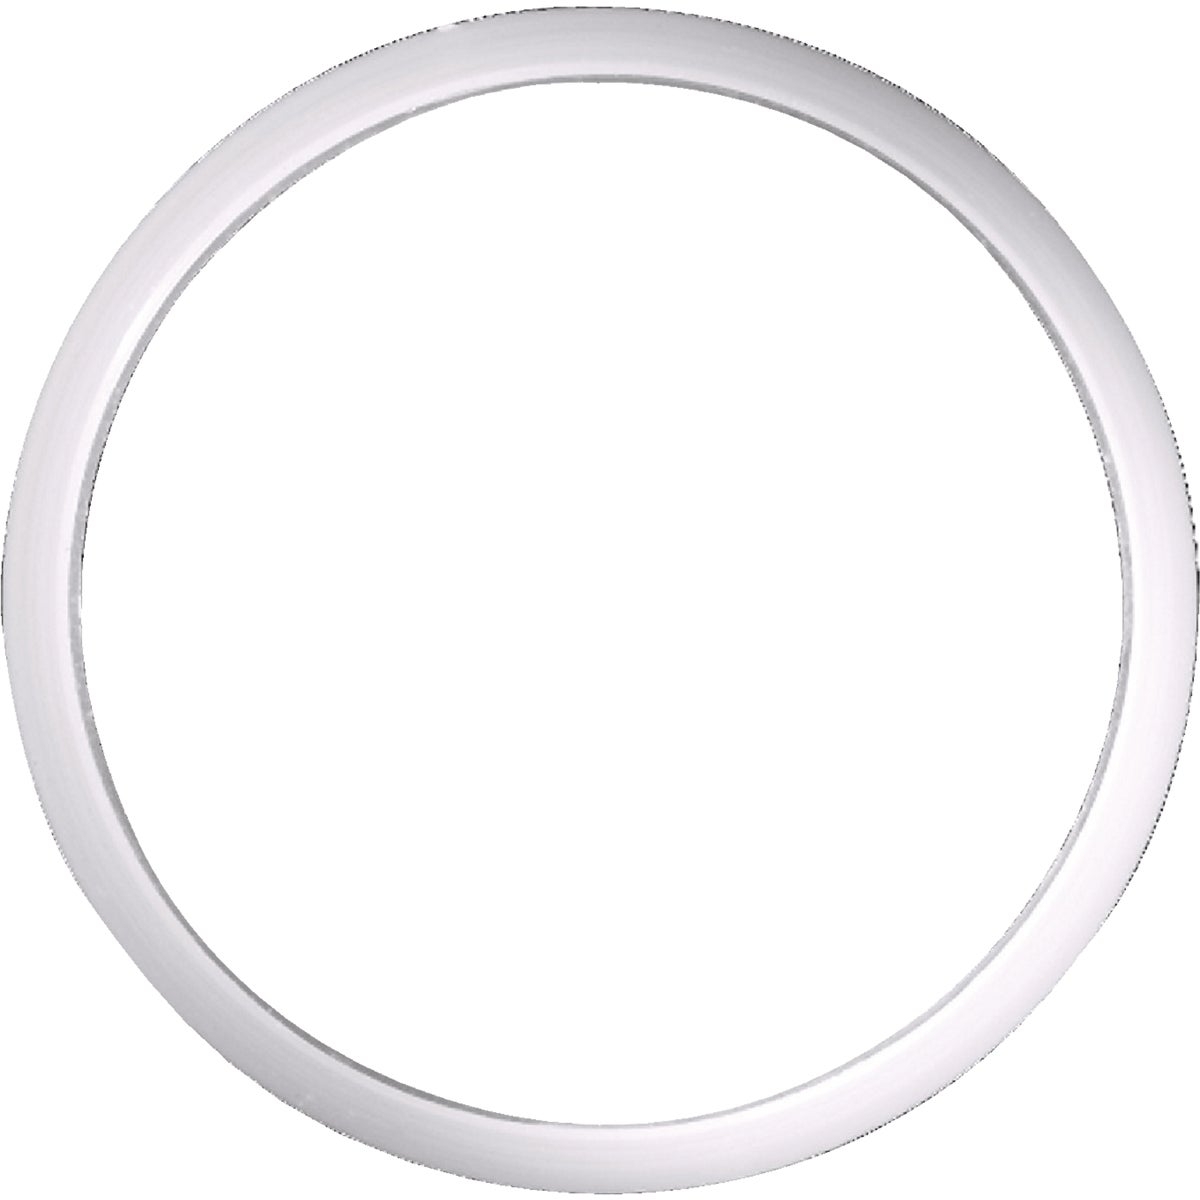 """1-1/2"""" SLIPJOINT WASHER - 36661B by Danco Perfect Match"""